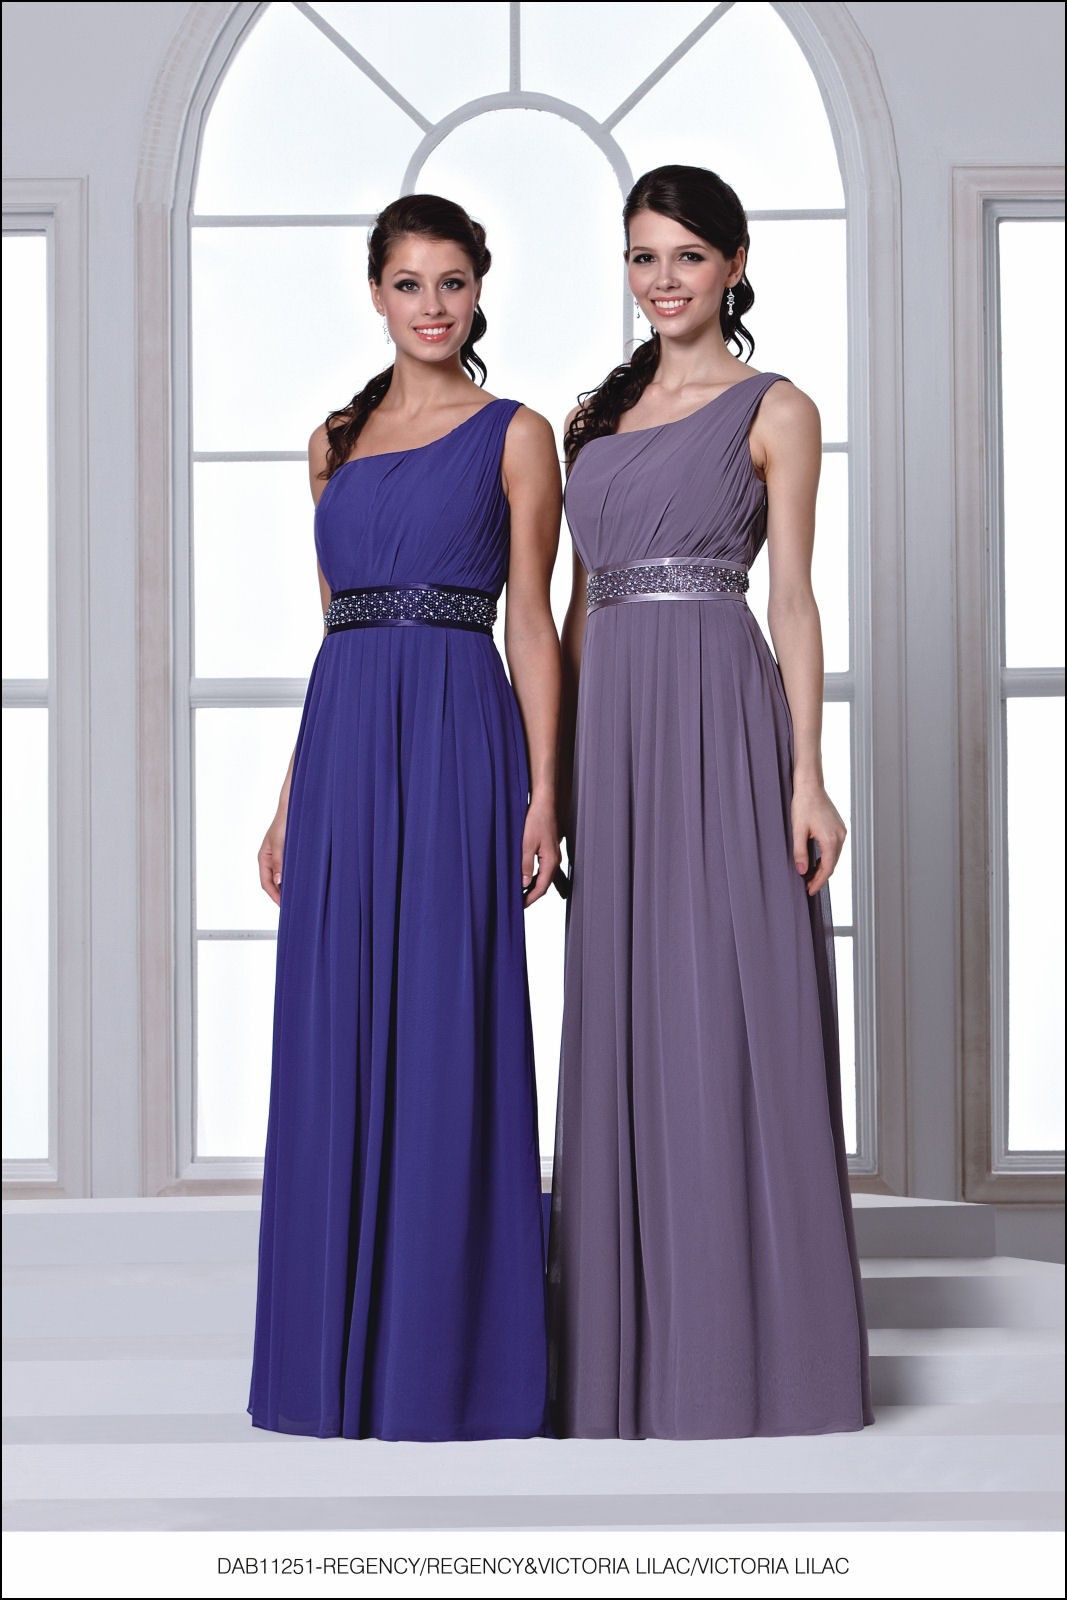 Victorian lilac bridesmaid dresses dresses and gowns ideas victorian lilac bridesmaid dresses ombrellifo Images